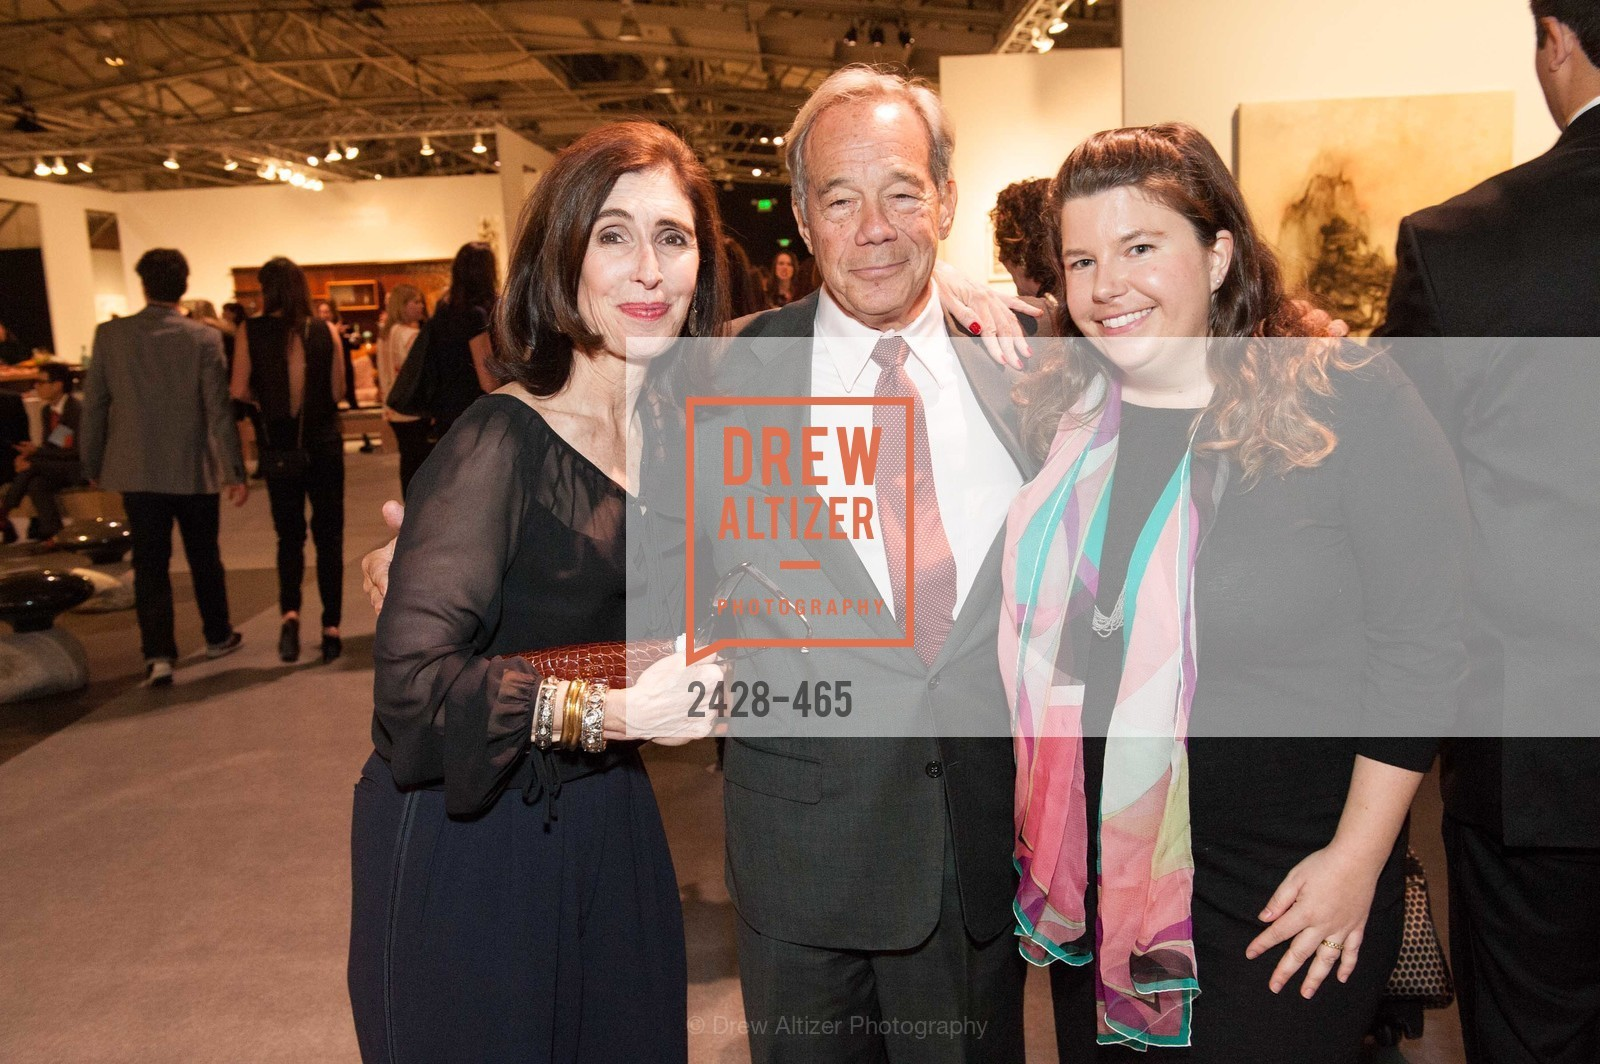 Eileen Michael, John Sanger, FOG Design + Art Preview Gala, US. US, January 16th, 2014,Drew Altizer, Drew Altizer Photography, full-service agency, private events, San Francisco photographer, photographer california